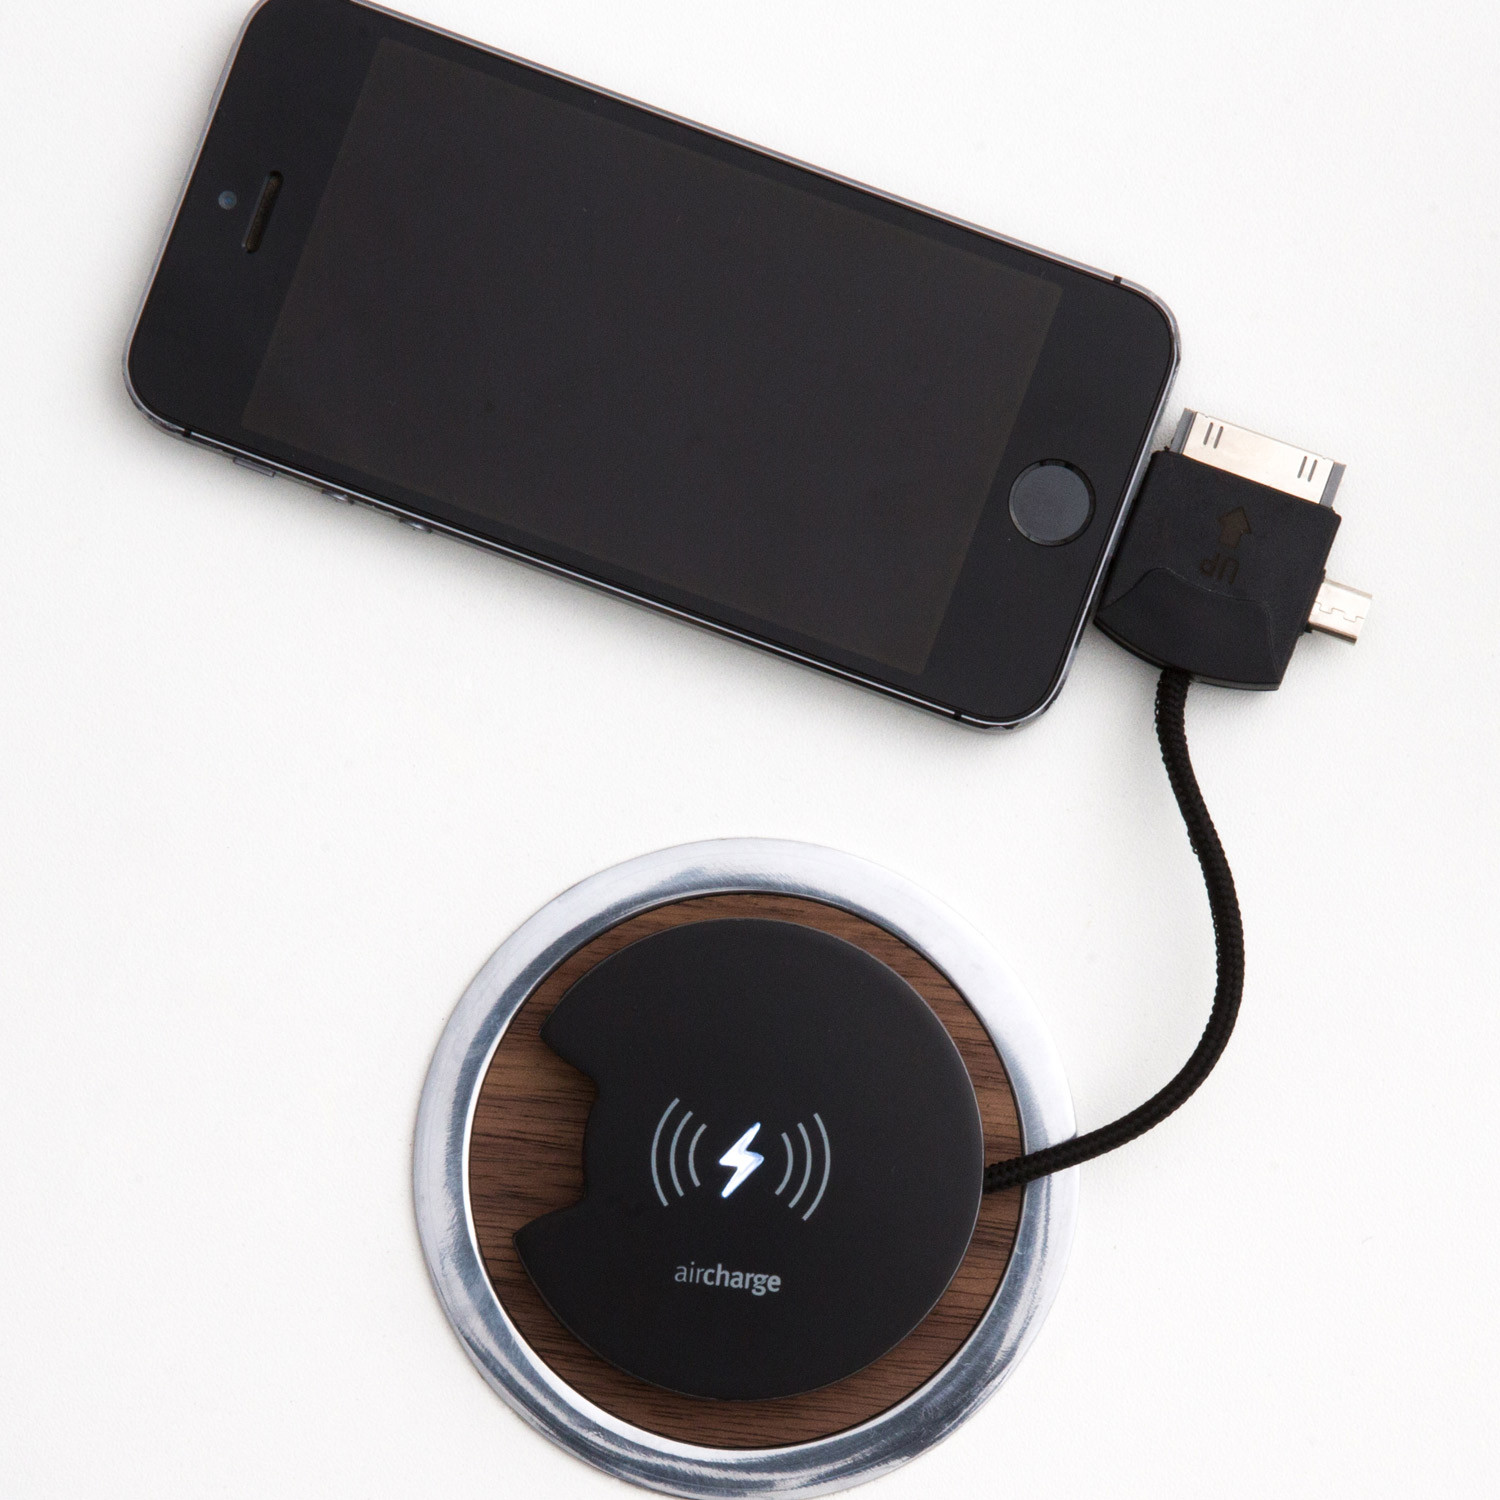 Aircharge Phone Charger Accessory